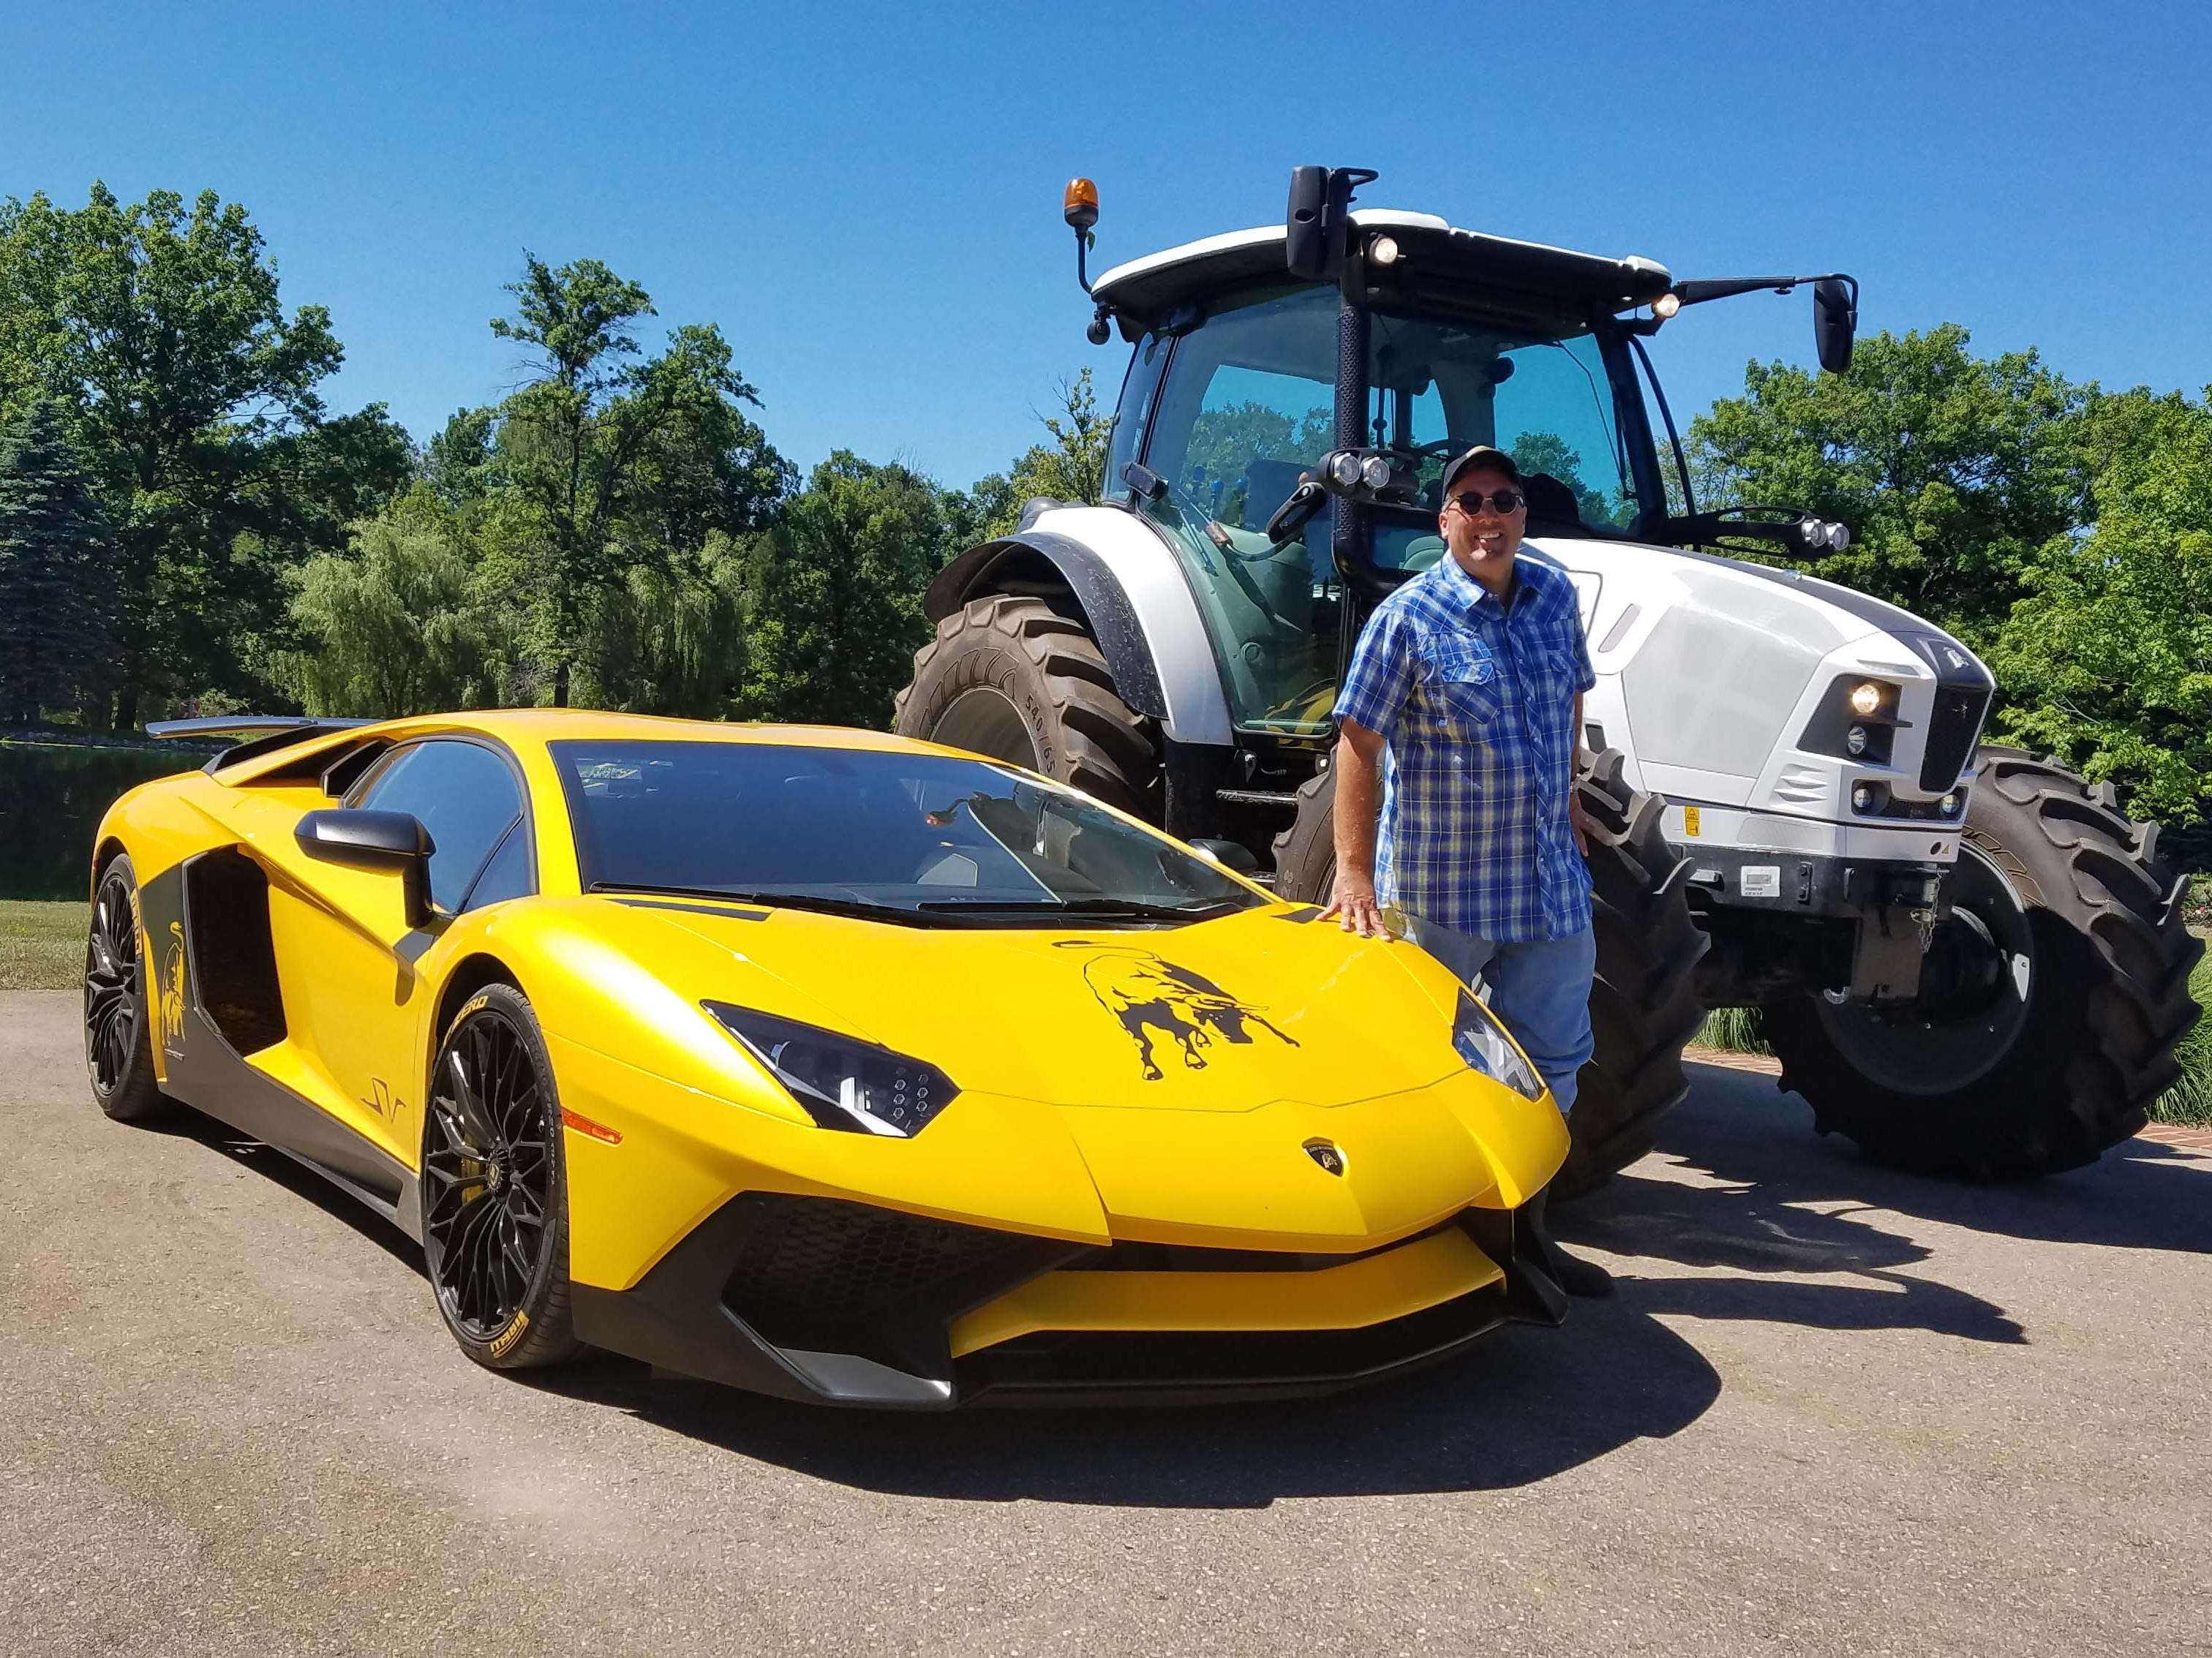 Detroit media entrepreneur Kevin Adell has one of the country's most eclectic vehicle collections. Included in his garage is a rare pair of Lamborghinis: the Aventador SV and the Nitro 130 T4i tractor.